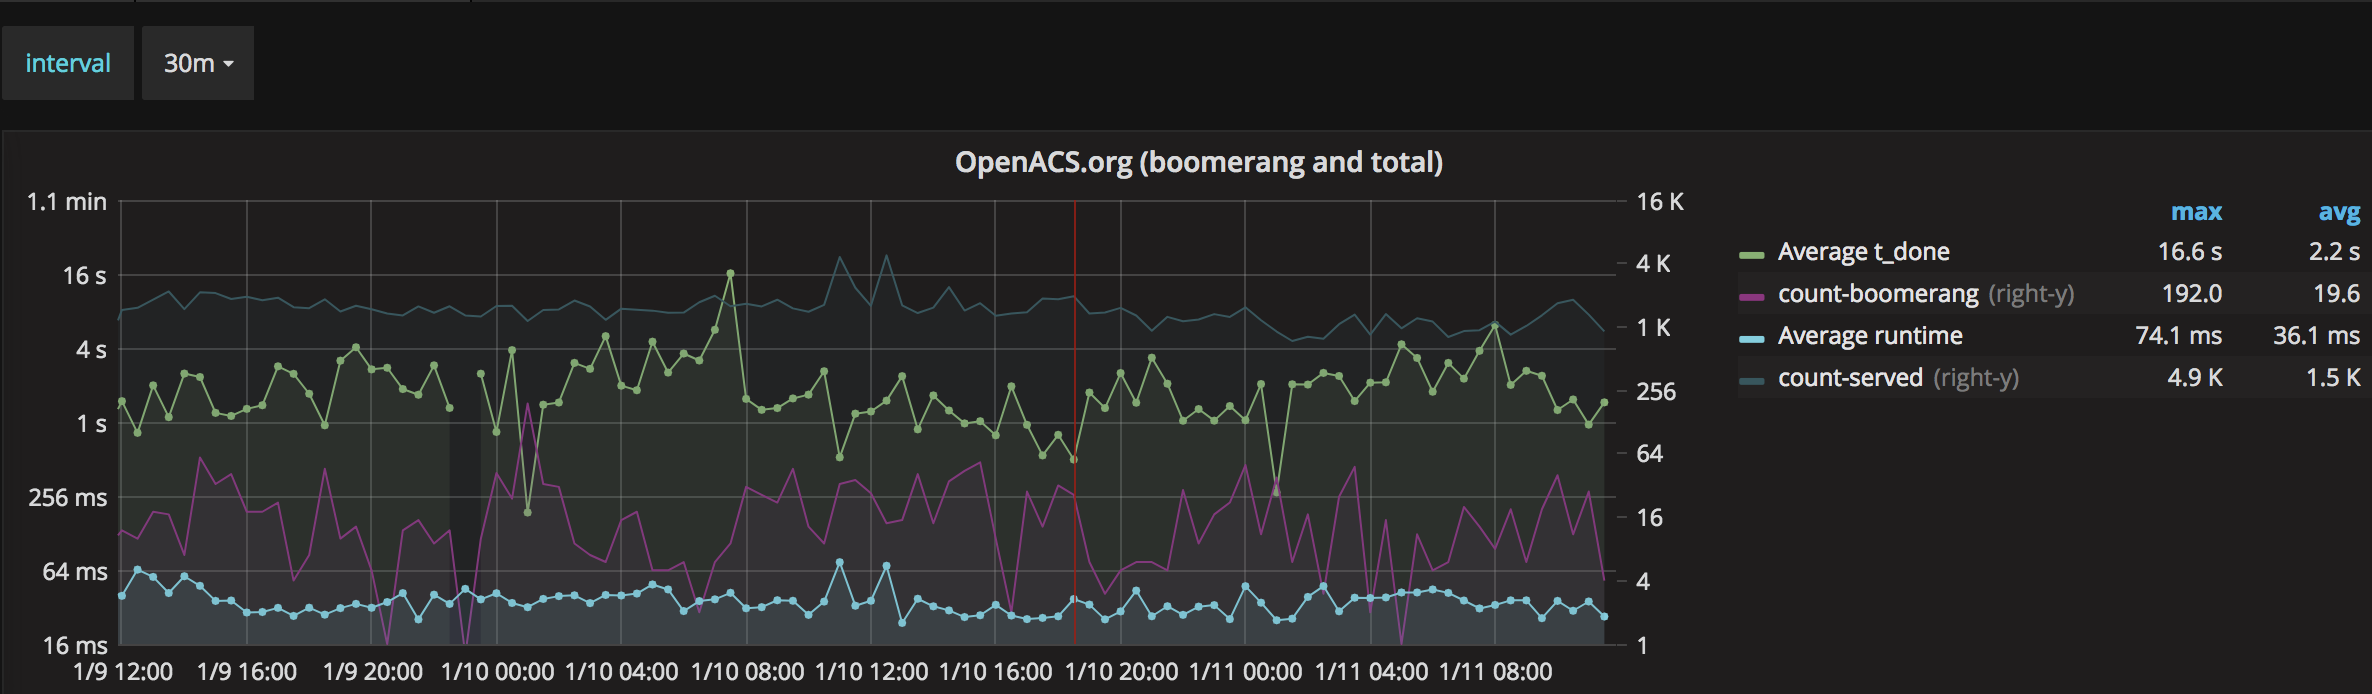 OpenACS performance 2 days